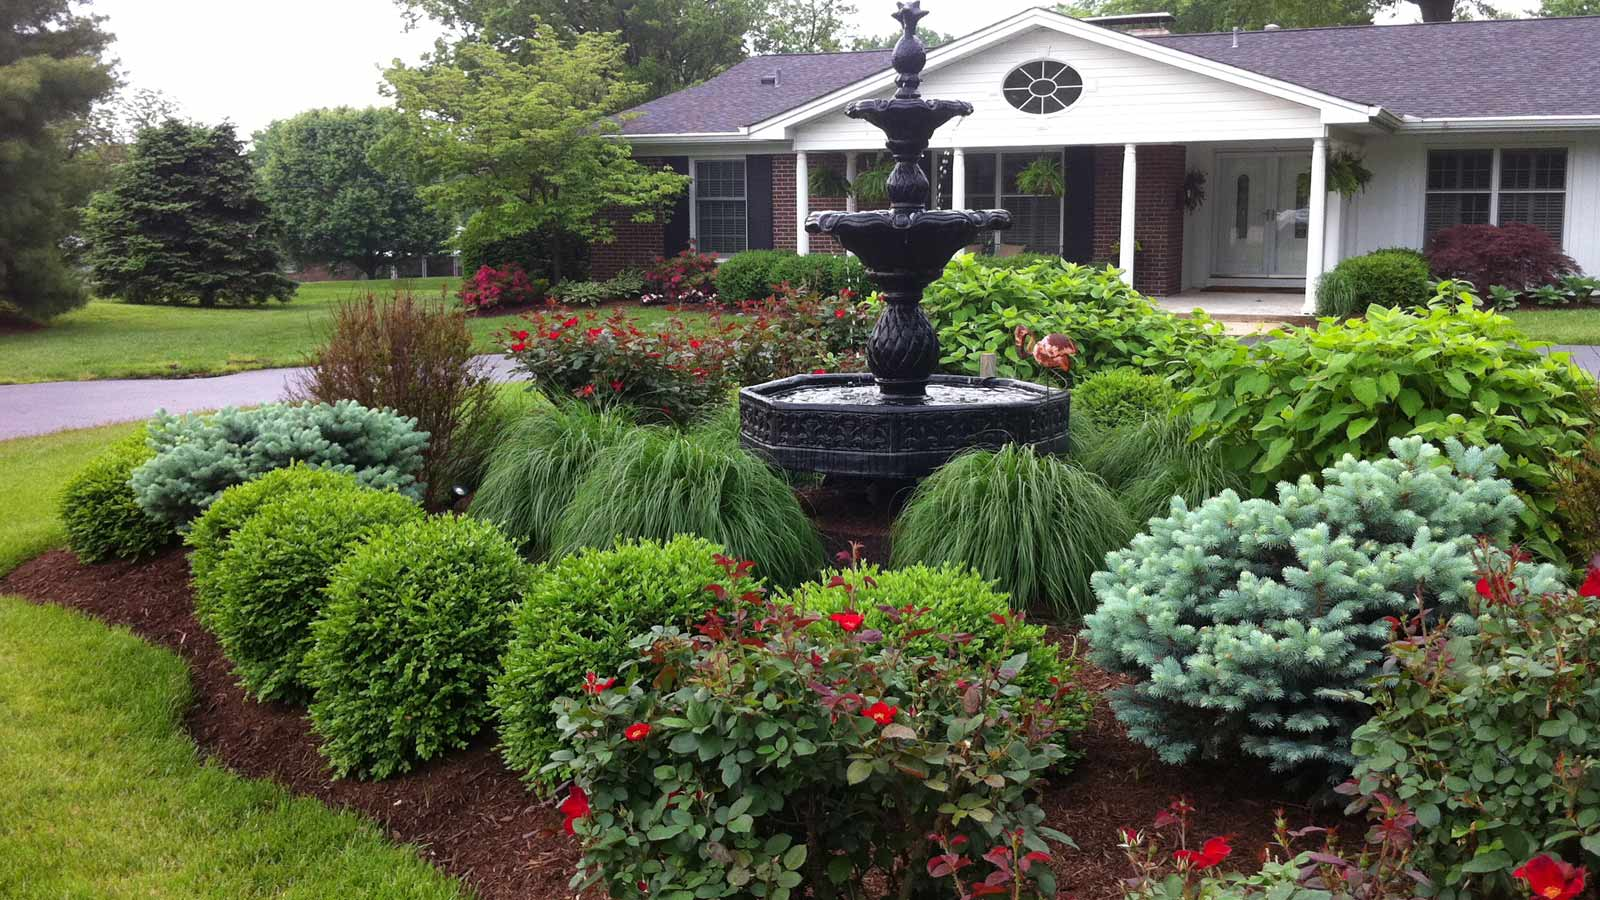 Landscape Design Wallpapers High Quality | Download Free